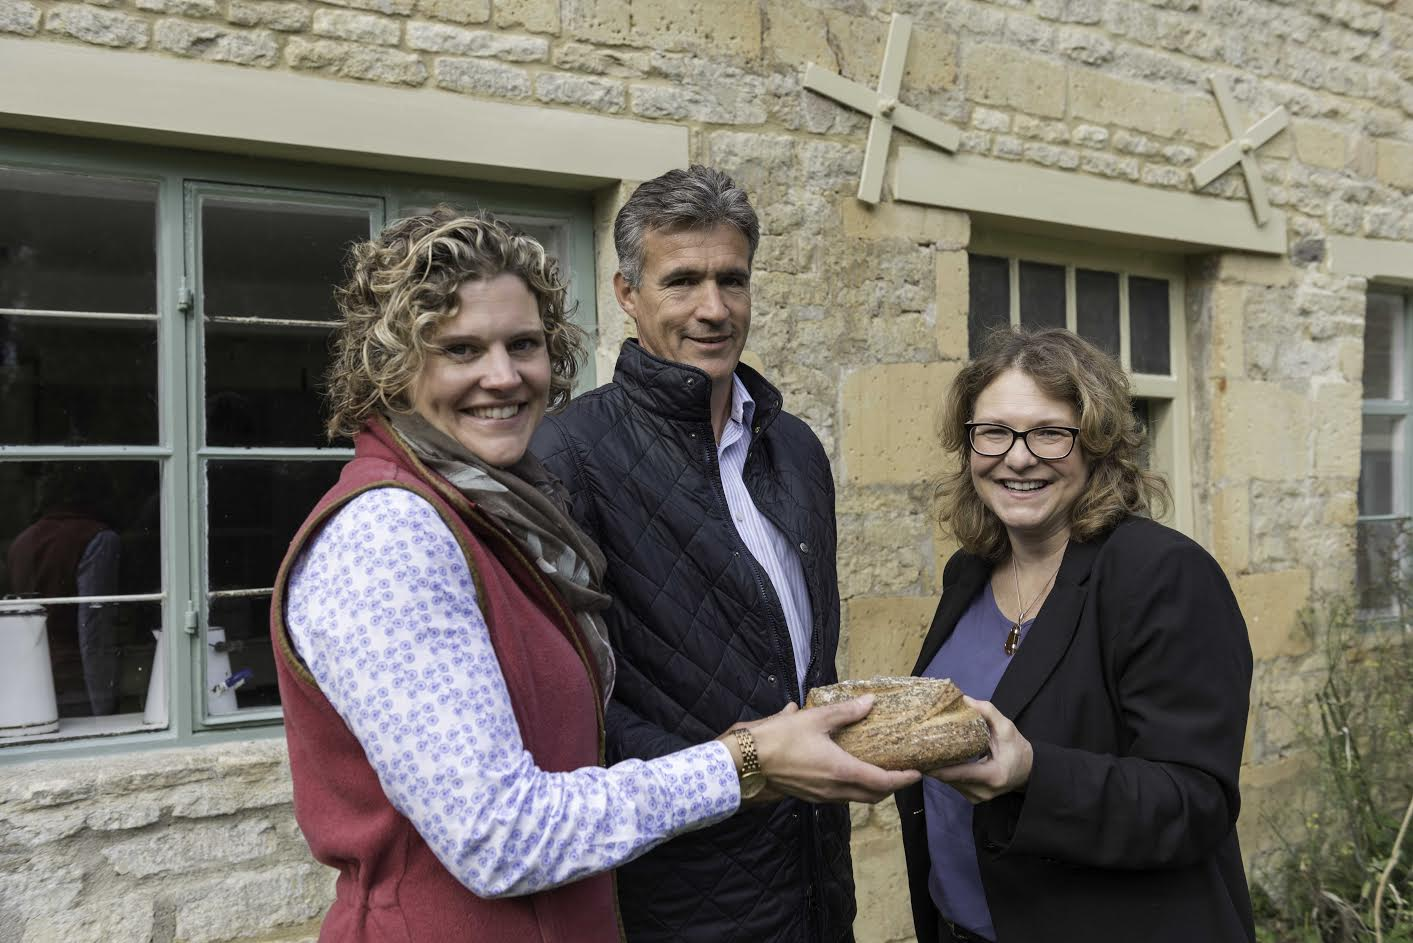 Rural attraction Sacrewell Mill receives money needed to refurbish bread oven